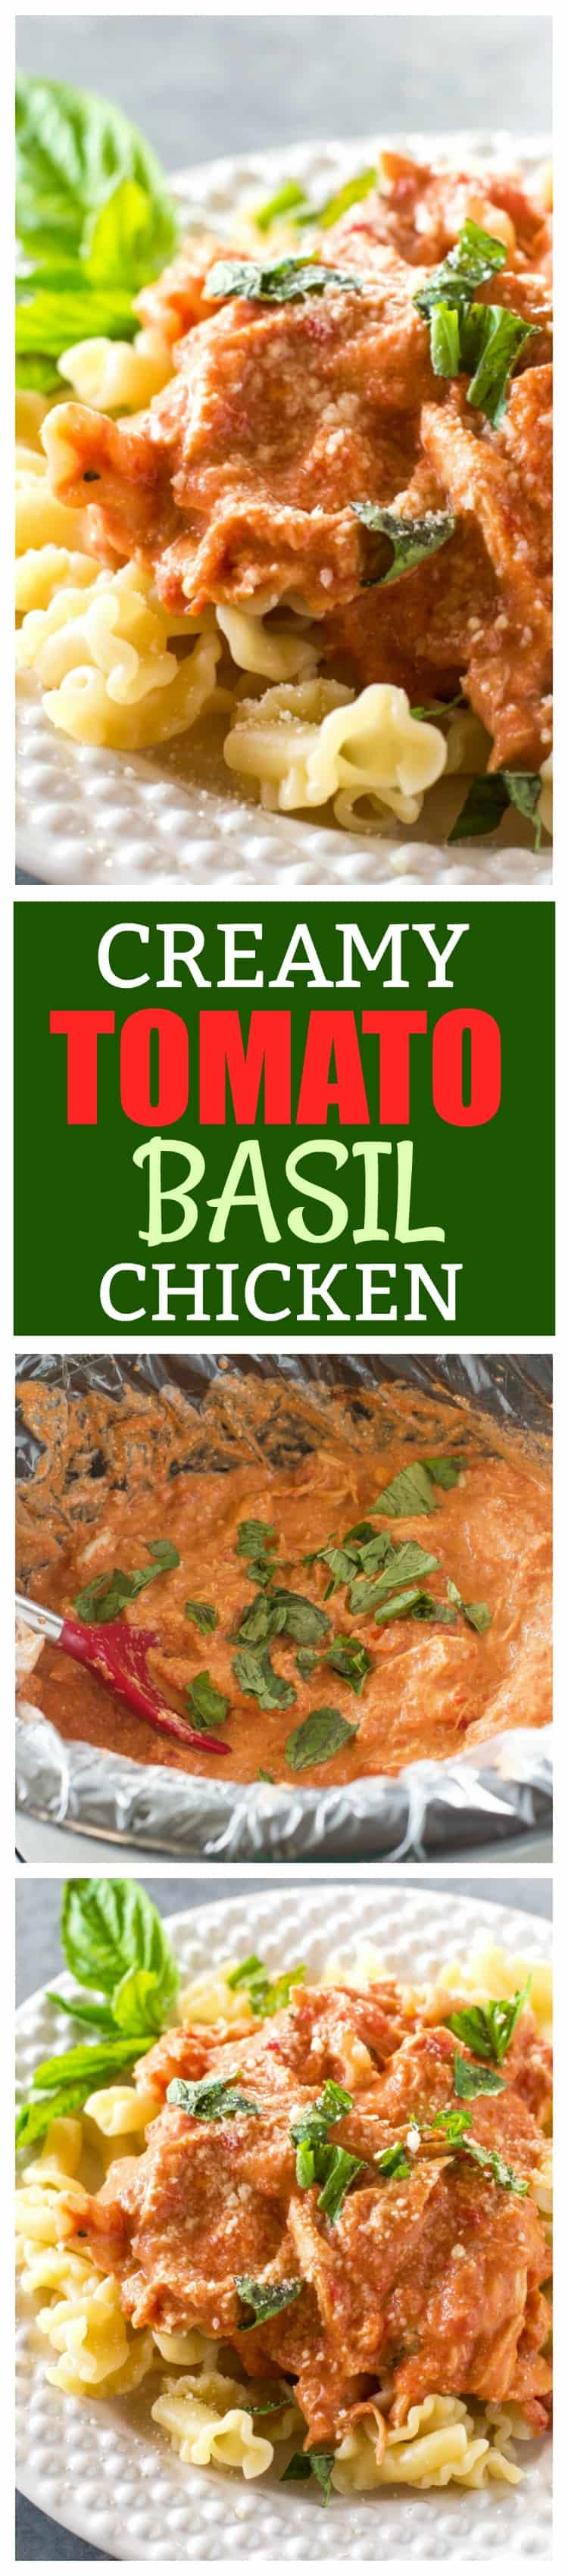 Creamy Tomato Basil Chicken - made in the slow cooker and served over pasta for an easy weeknight dinner. #creamy #tomato #basil #chicken #slowcooker